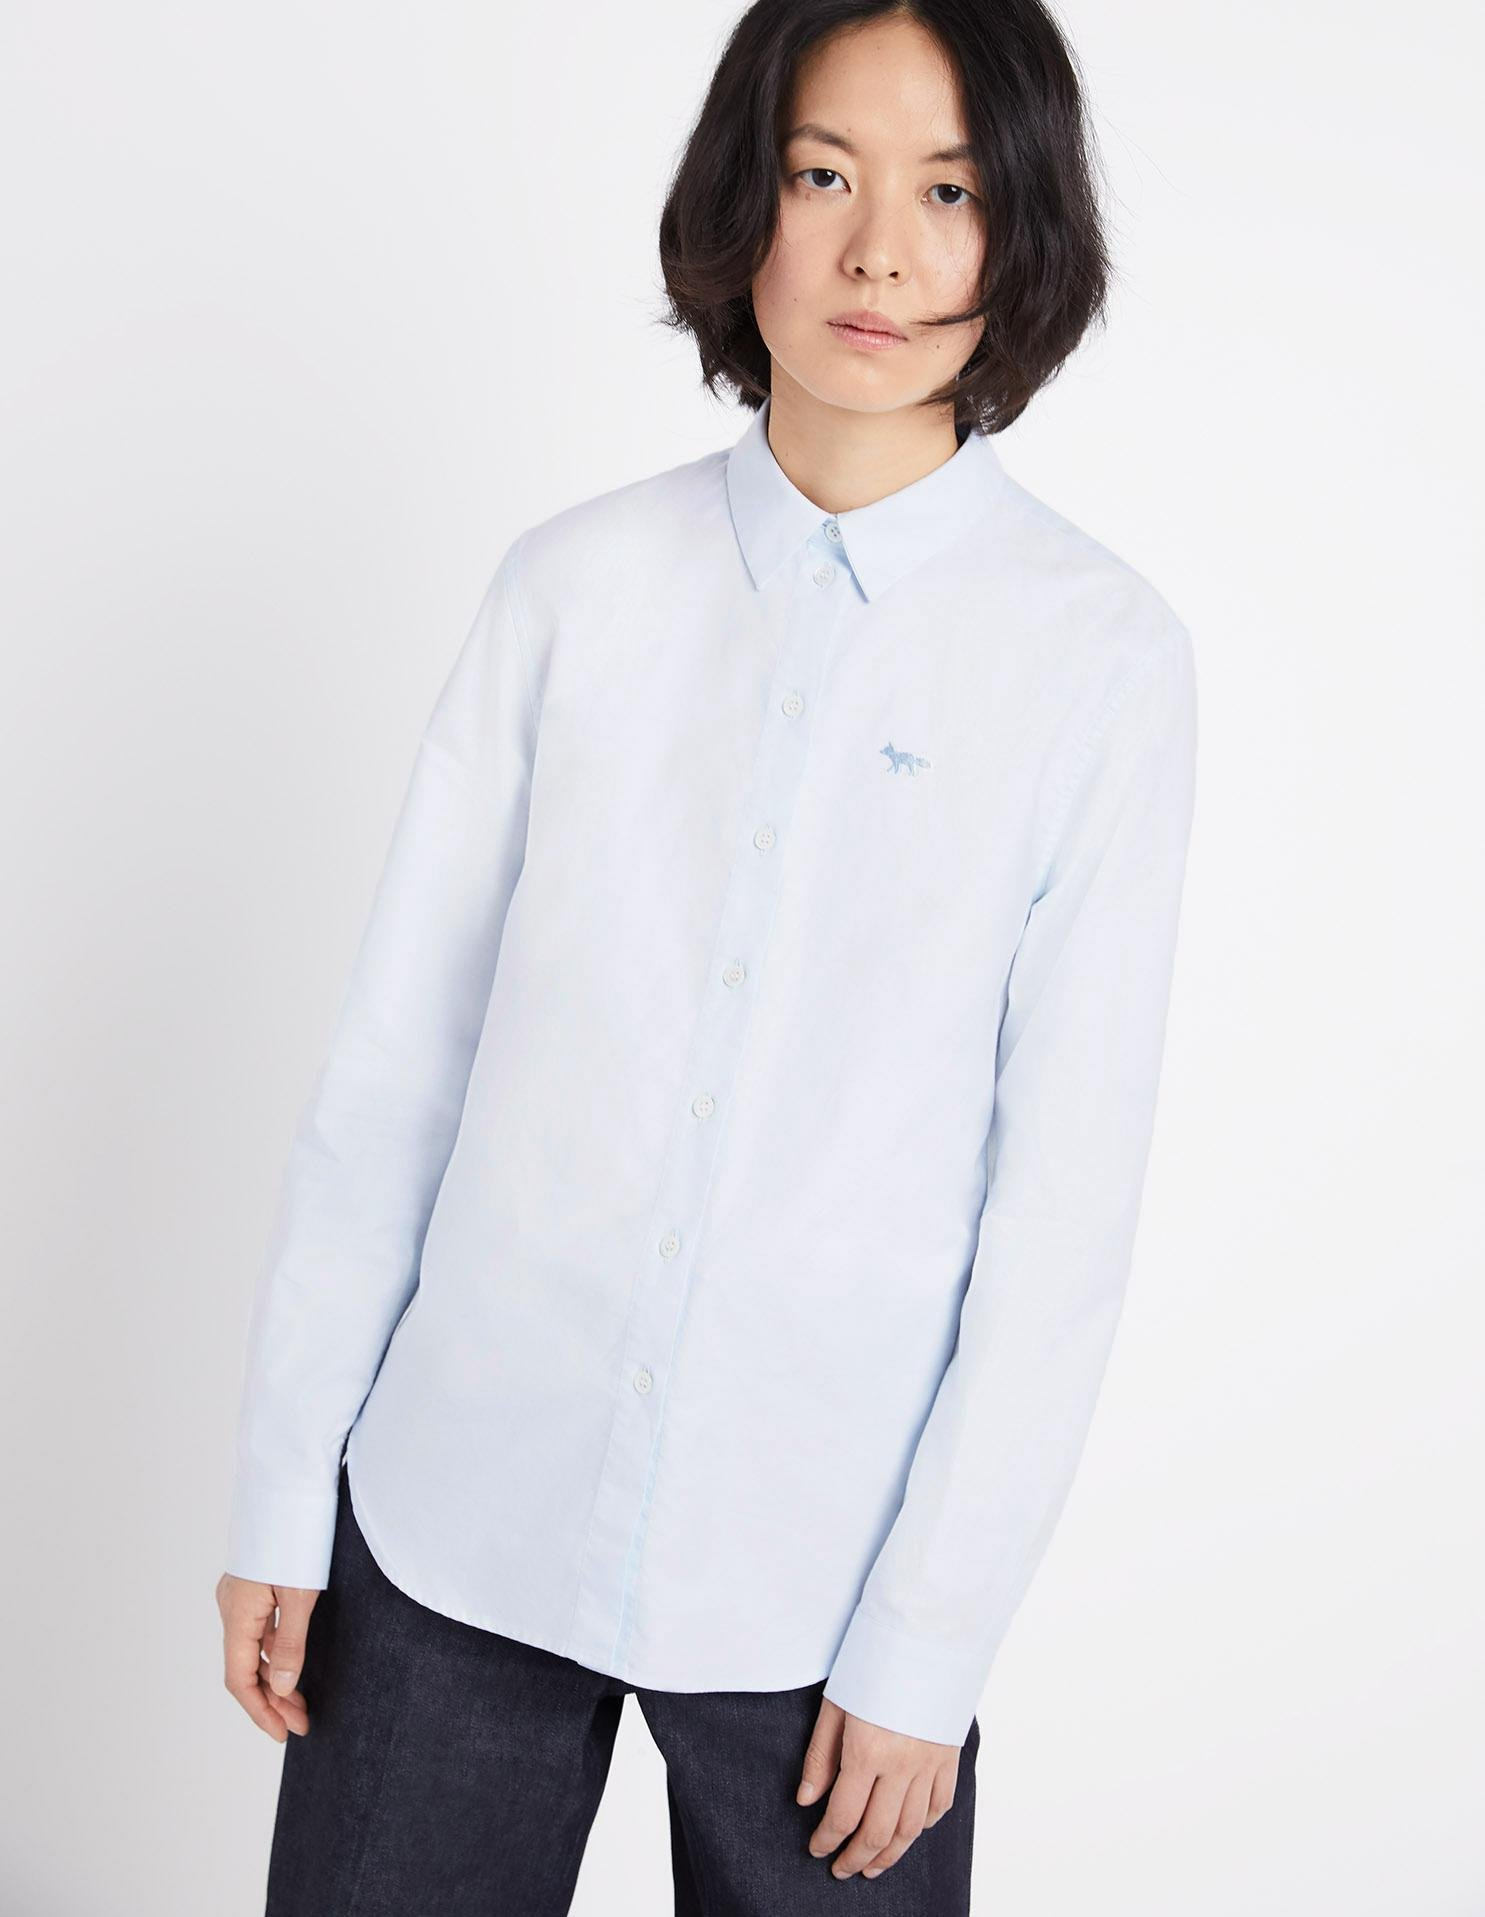 FOX EMBROIDERY CLASSIC SHIRT 1